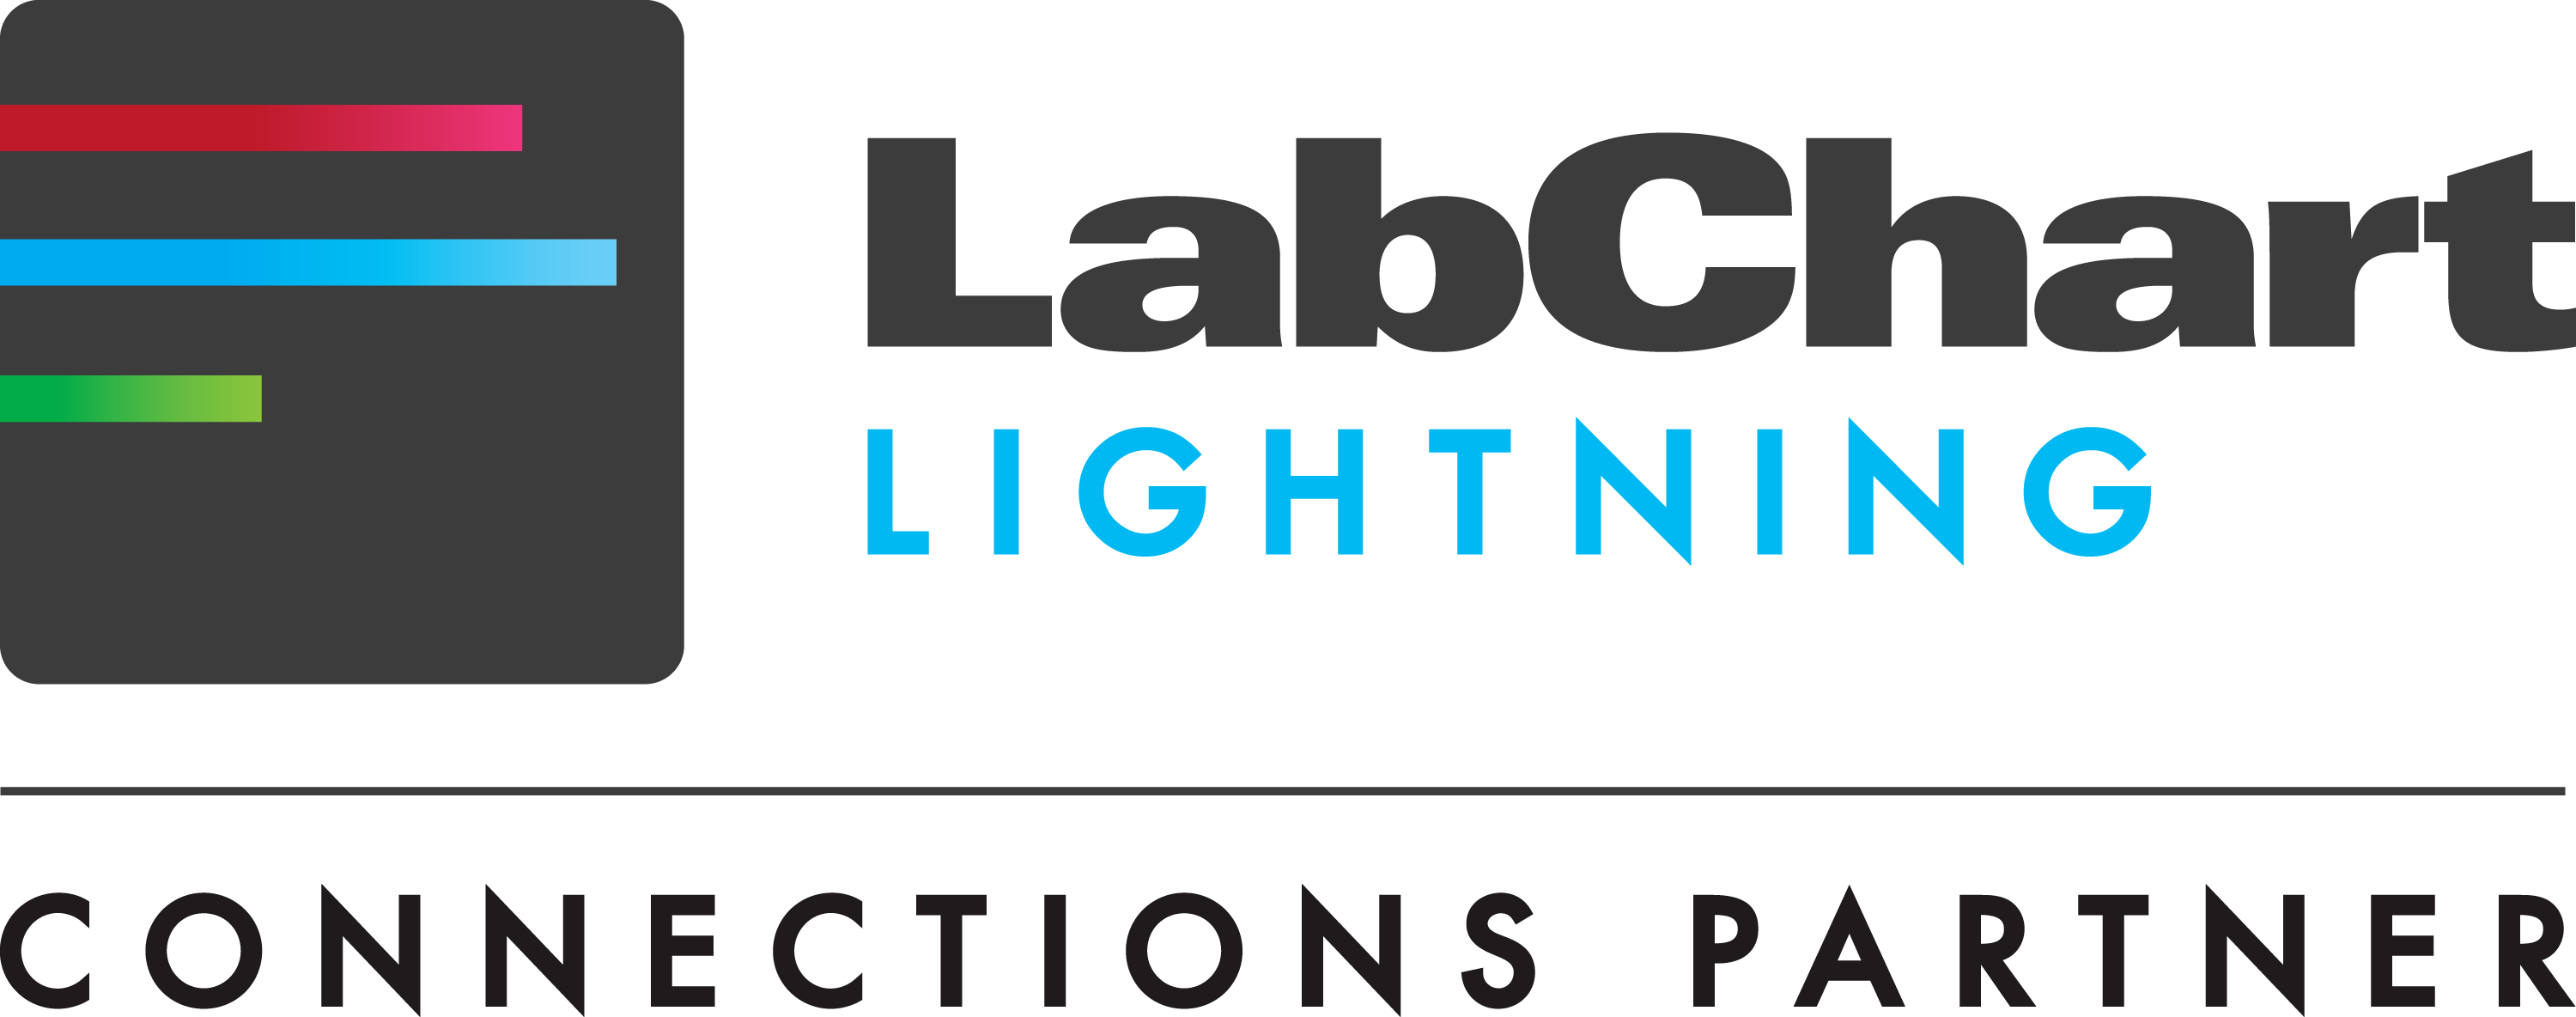 LabChart Lightning Connections Parter